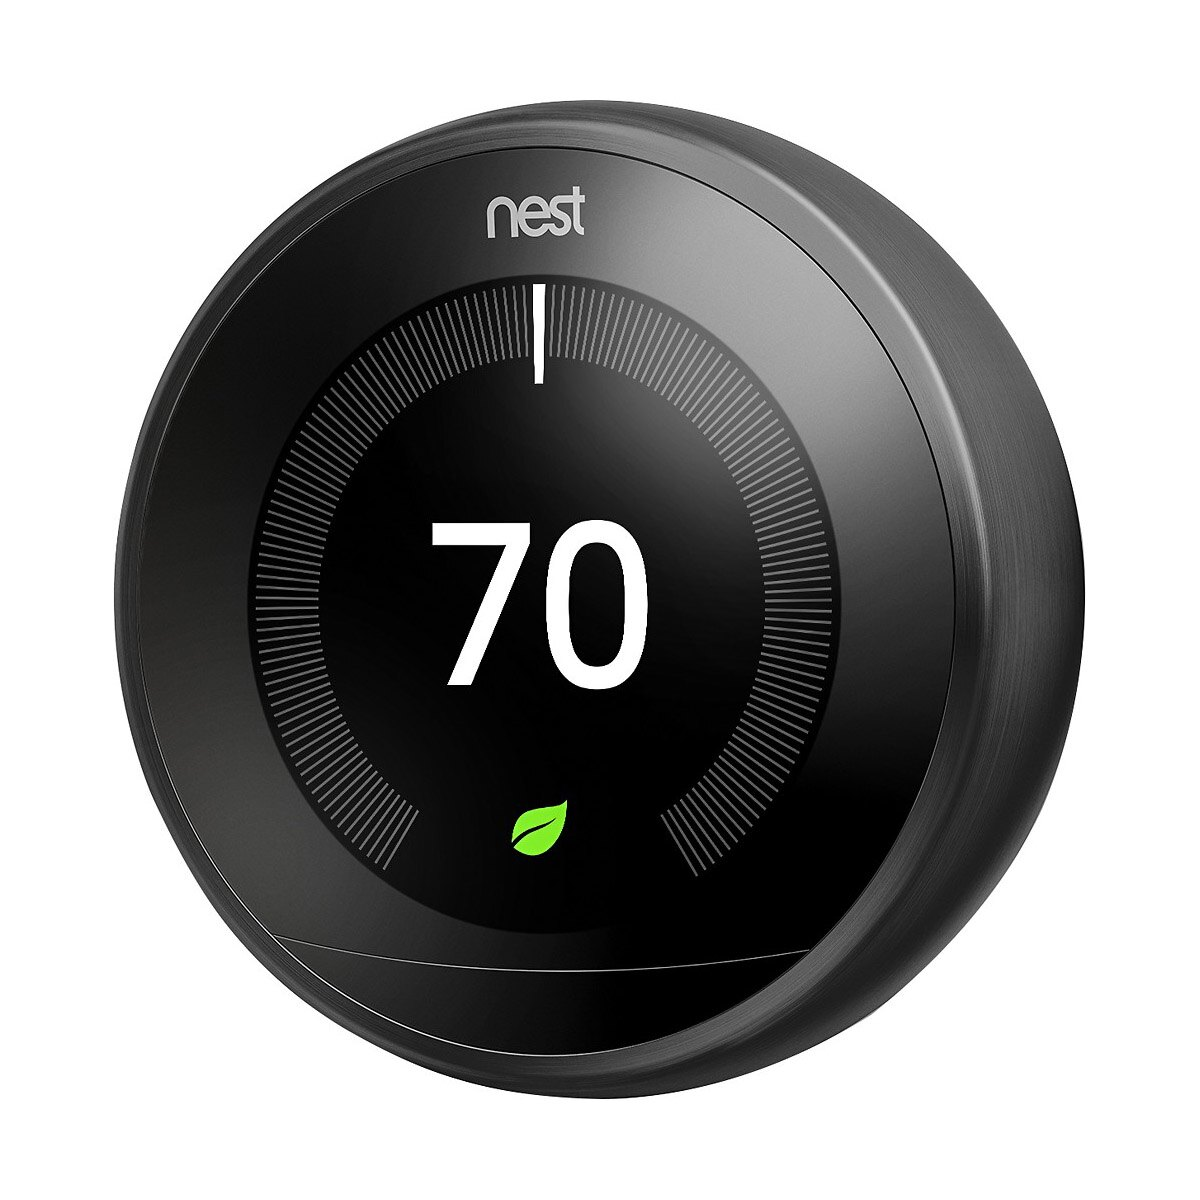 Nest 3rd Generation Programmable Wi-Fi Smart Learning Thermostat T3016US - Black 2